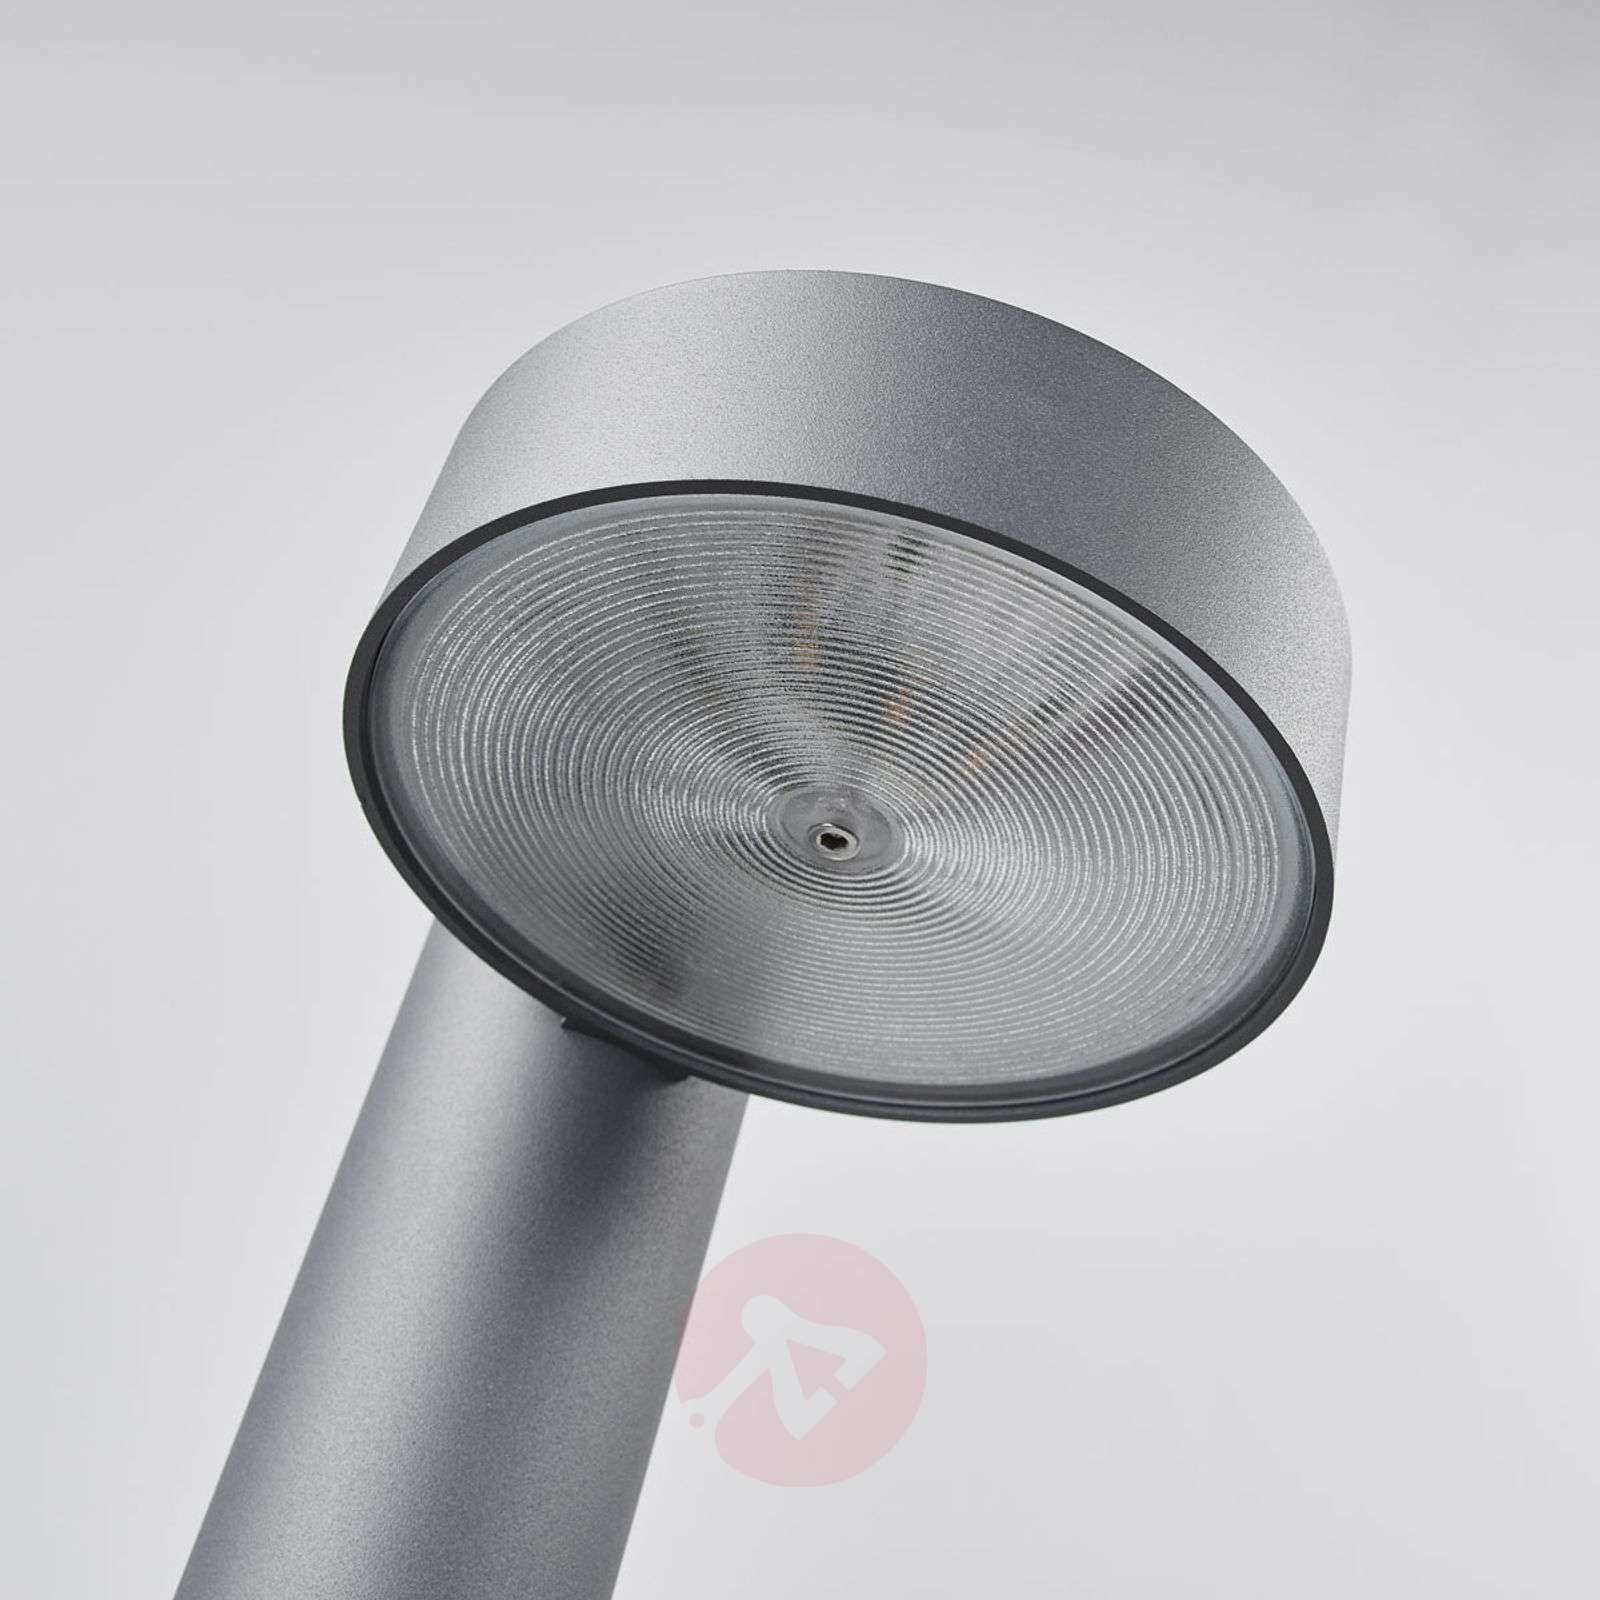 Bega Roger LED path light with downlight-1566029-01